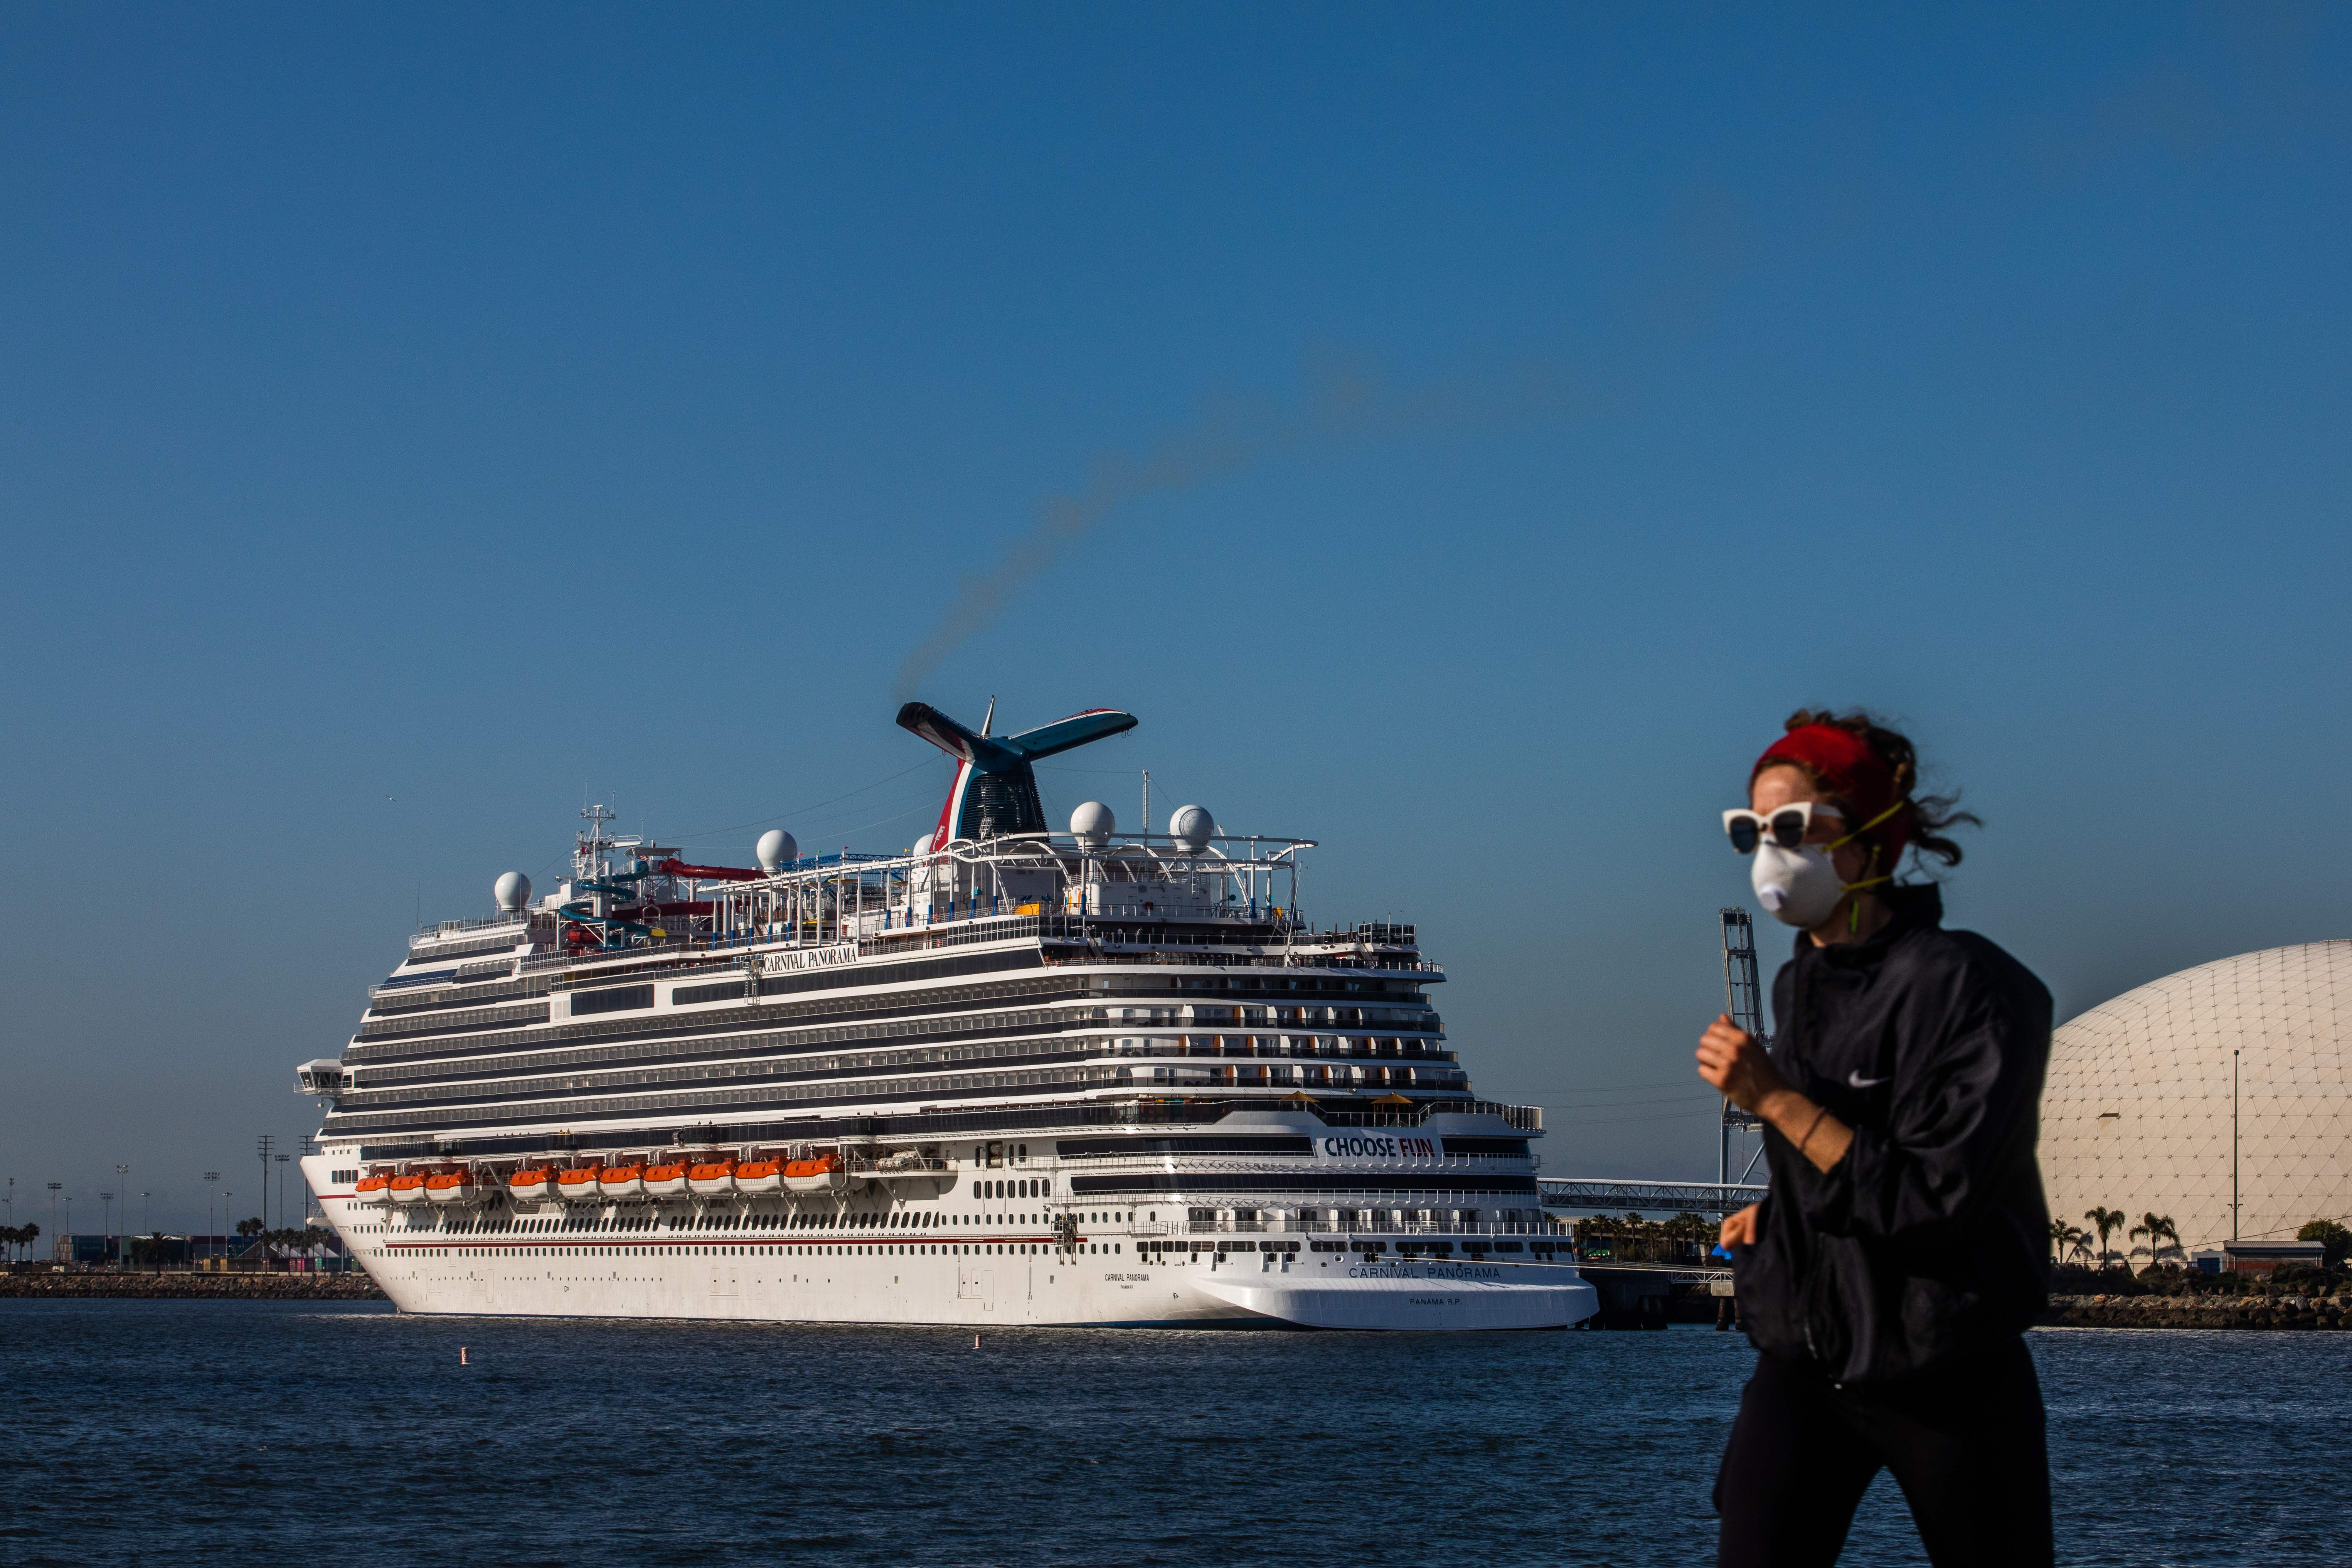 US lawmakers open probe into coronavirus infections on Carnival cruise ships